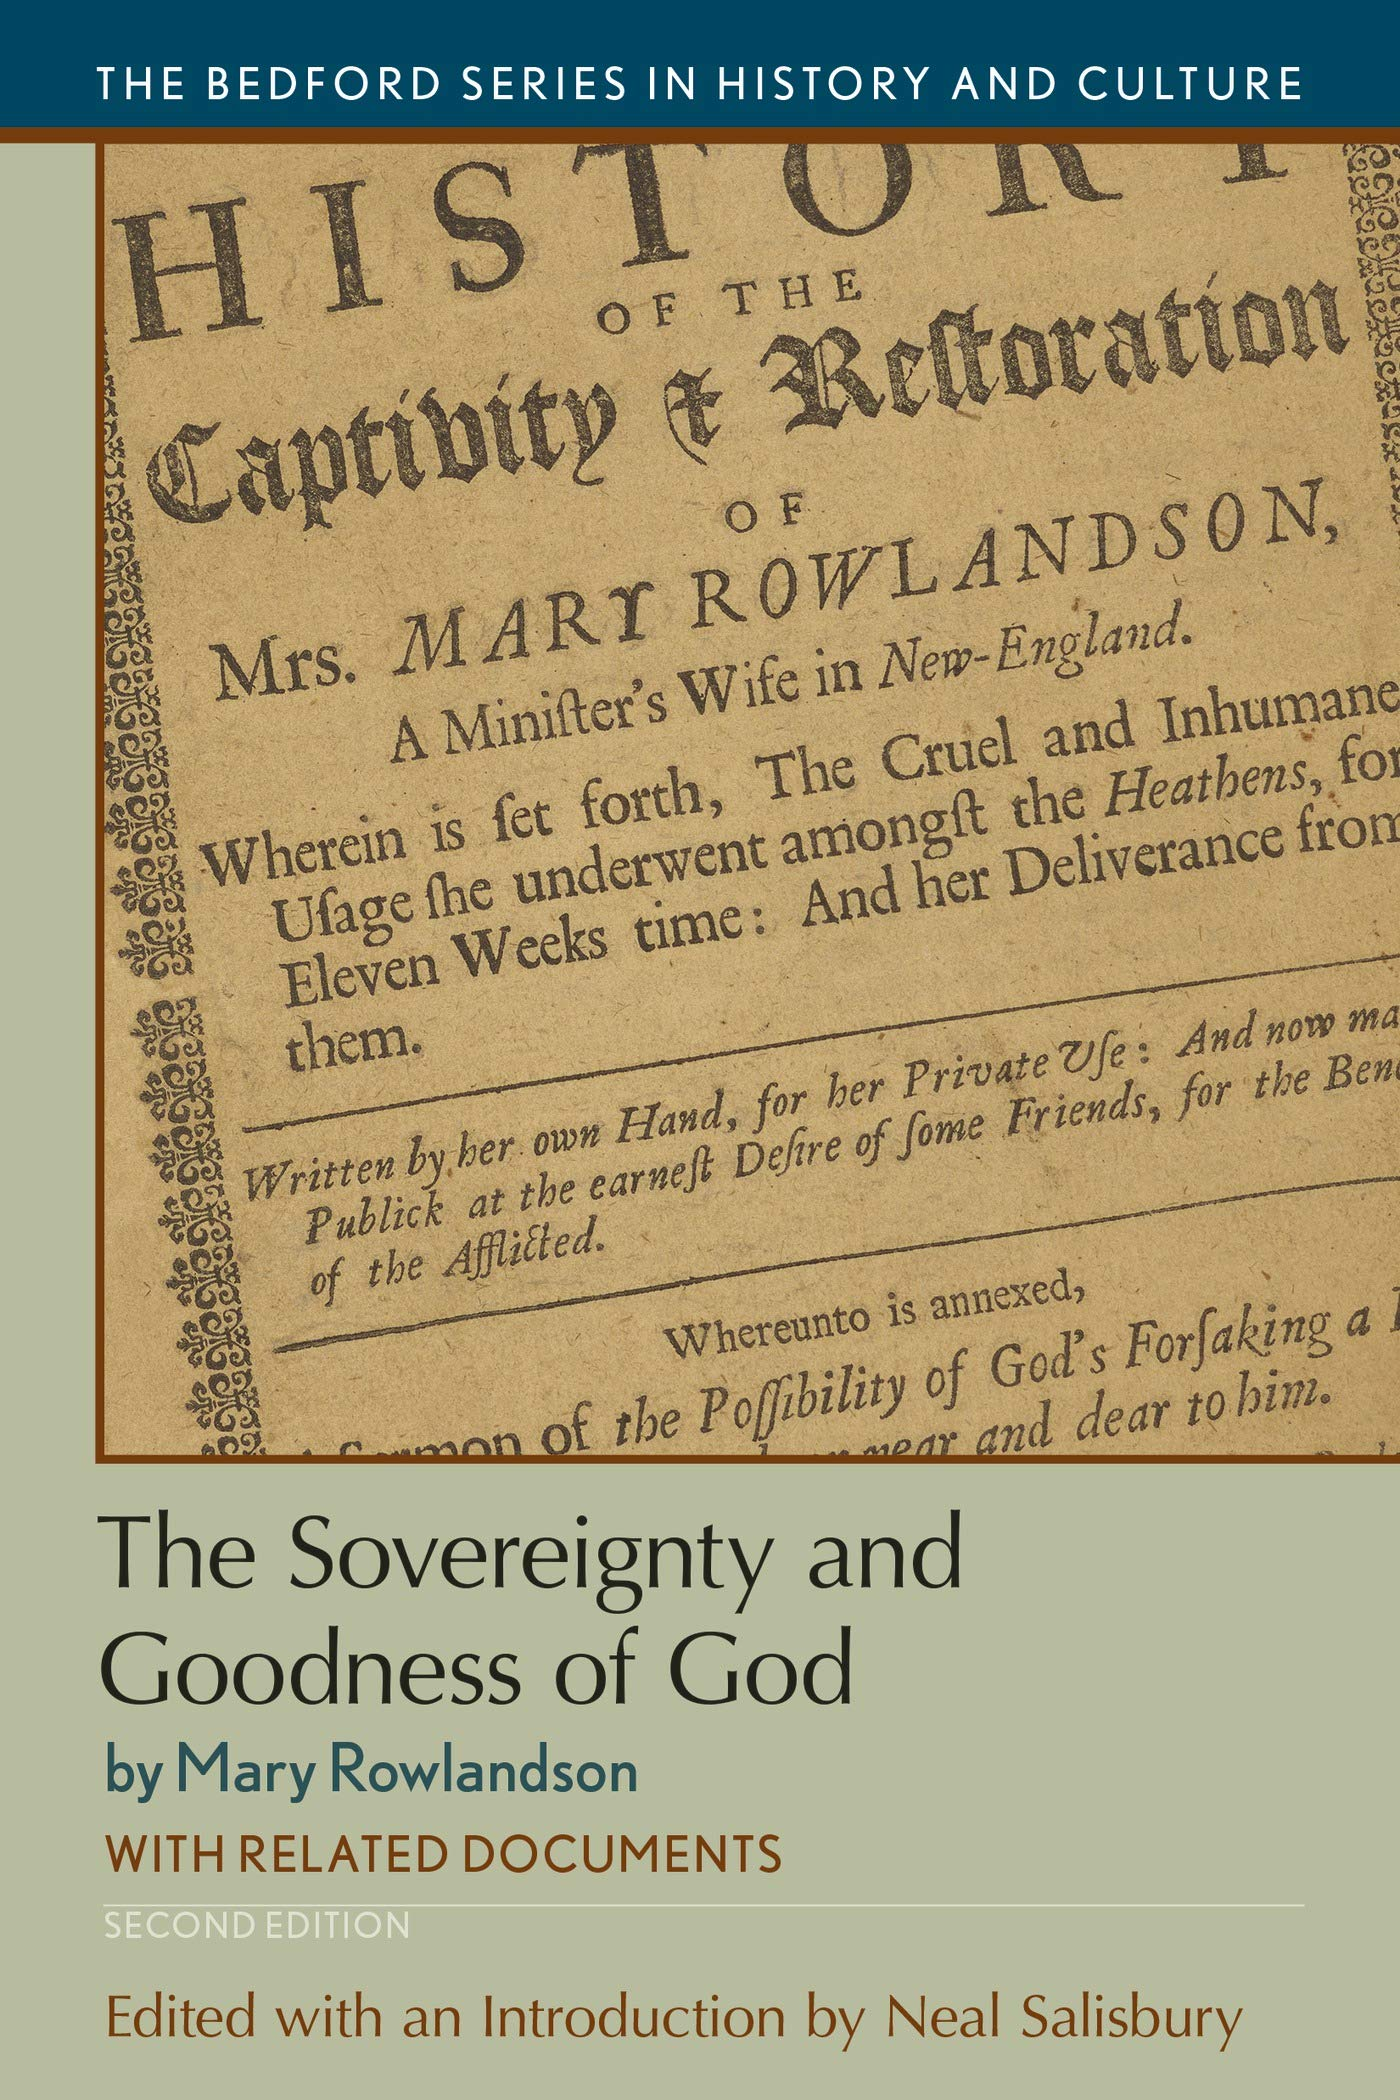 the sovereignty and goodness of god with related documents pdf